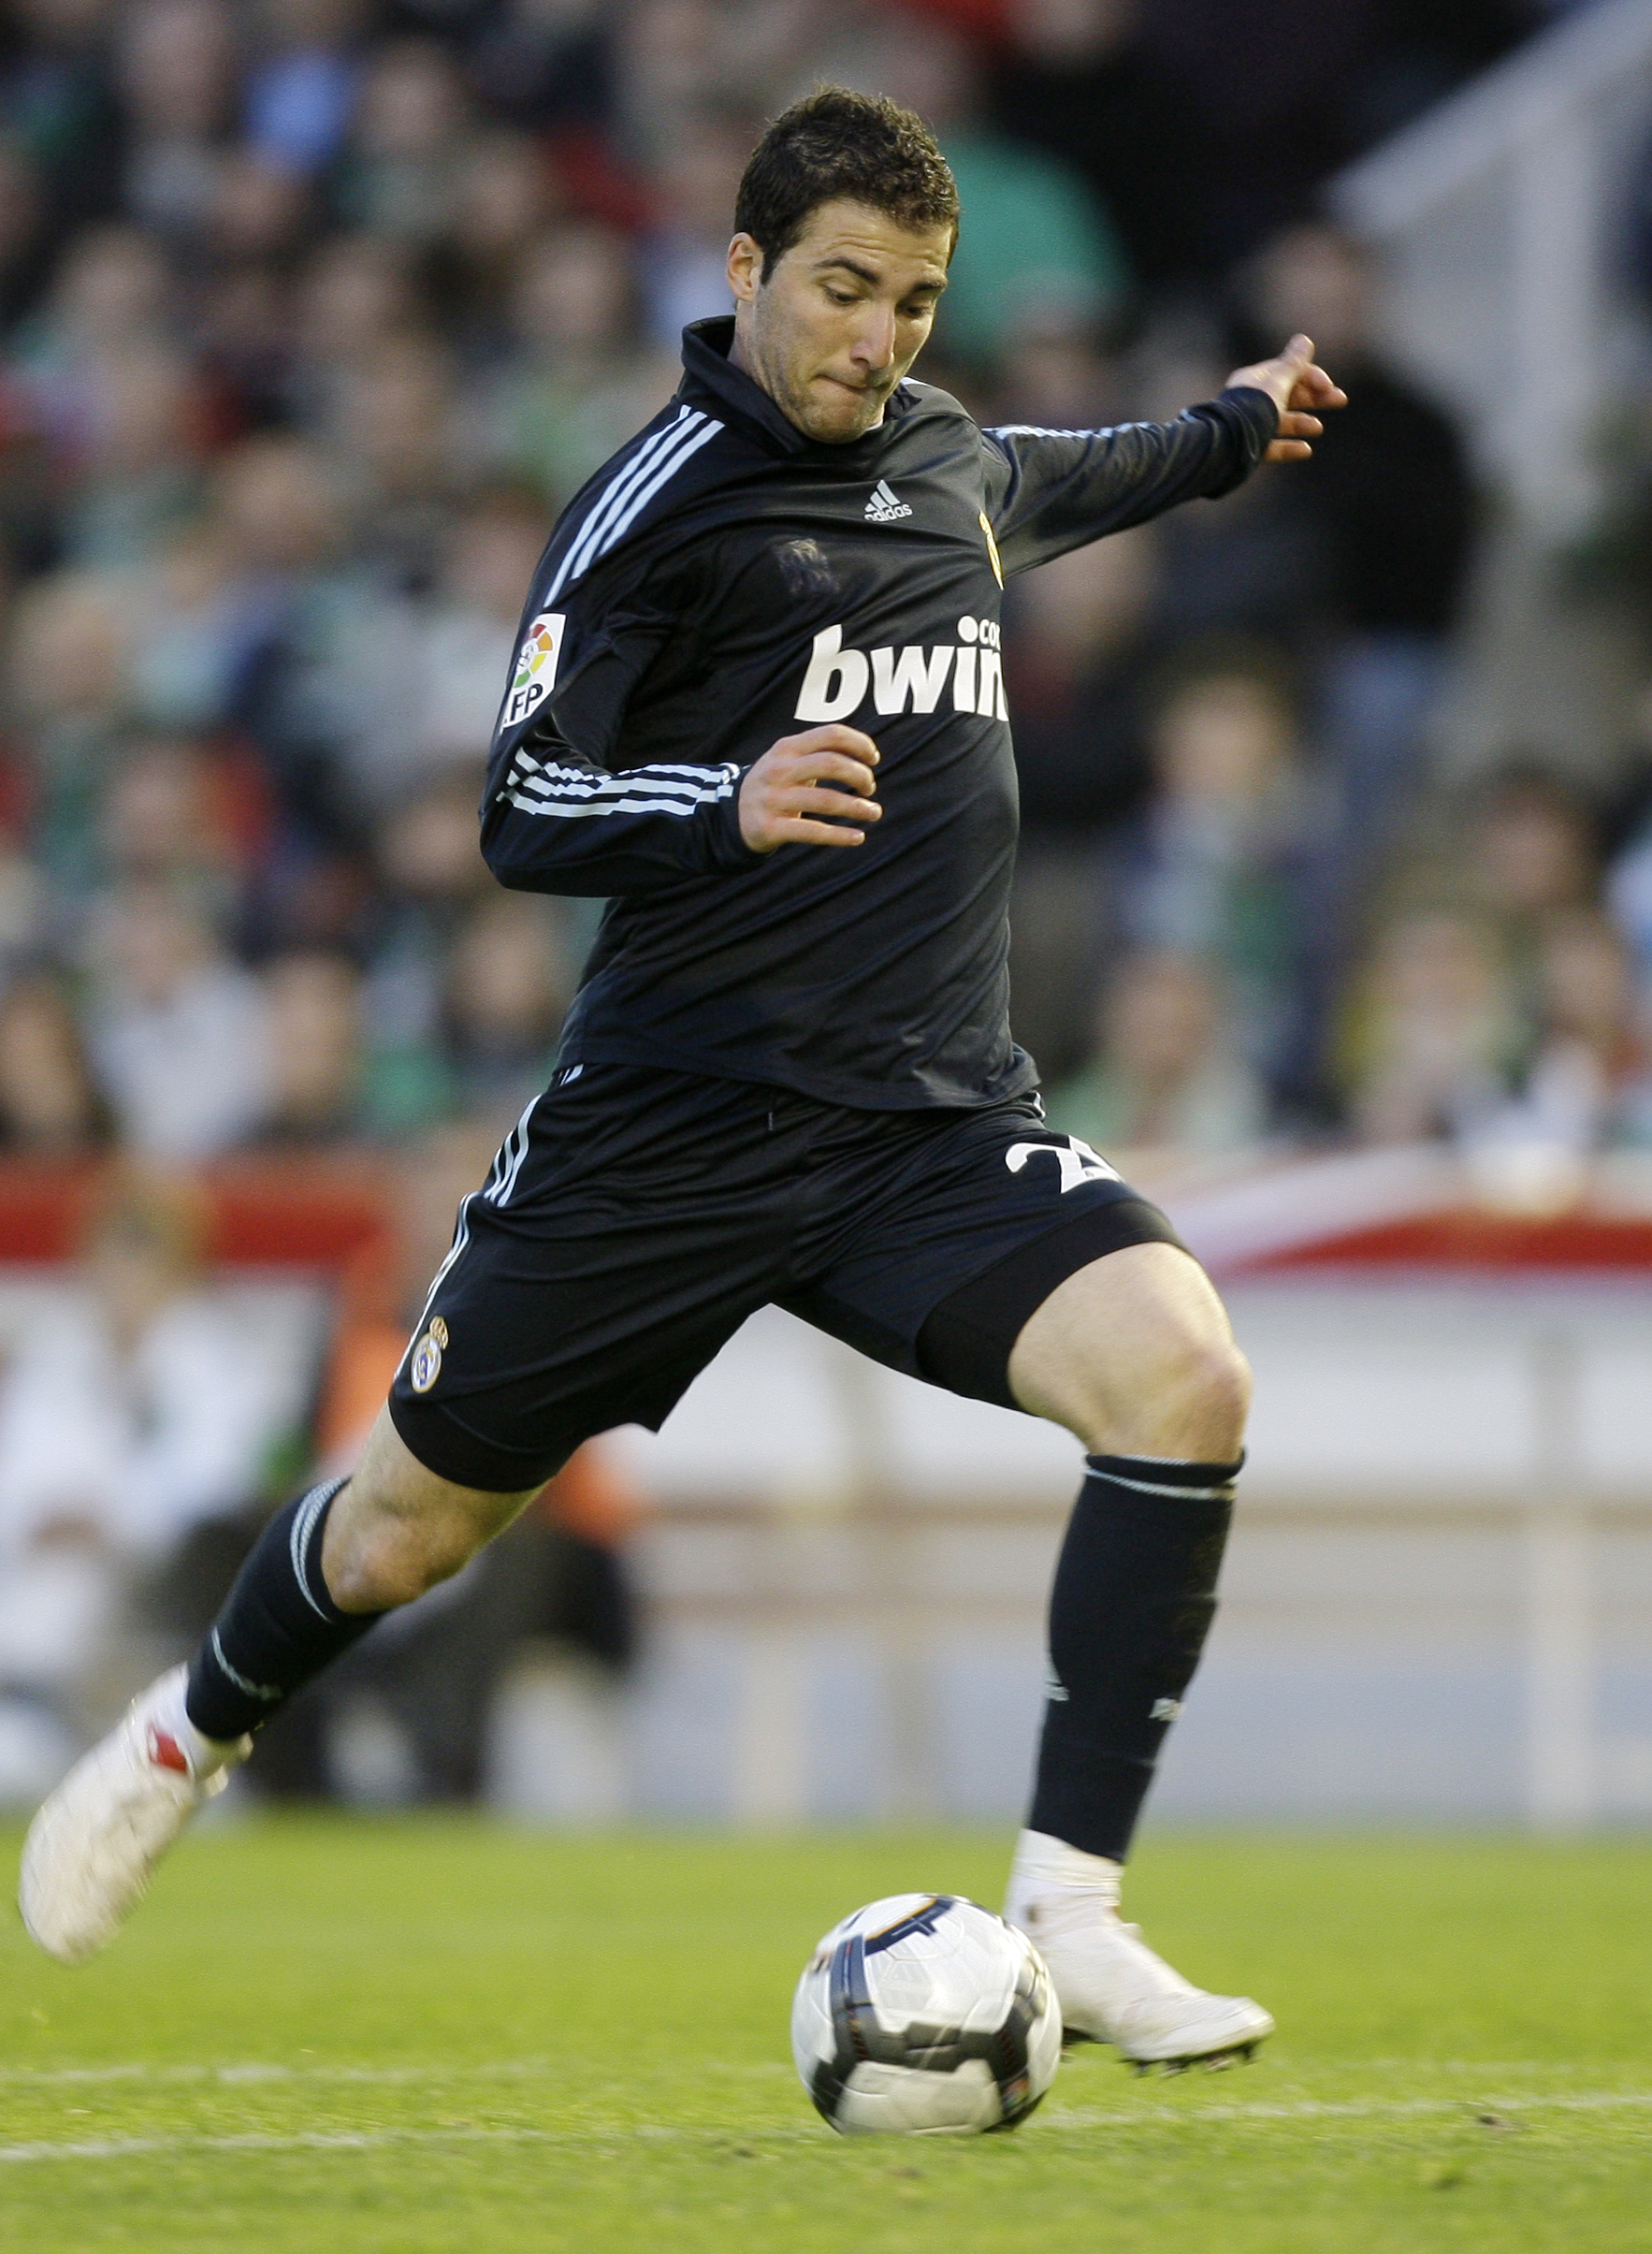 Real Madrid's Gonzalo Higuain from Argentina shoots to score during a Spanish La Liga soccer match against Racing Santander at El Sardinero stadium in...